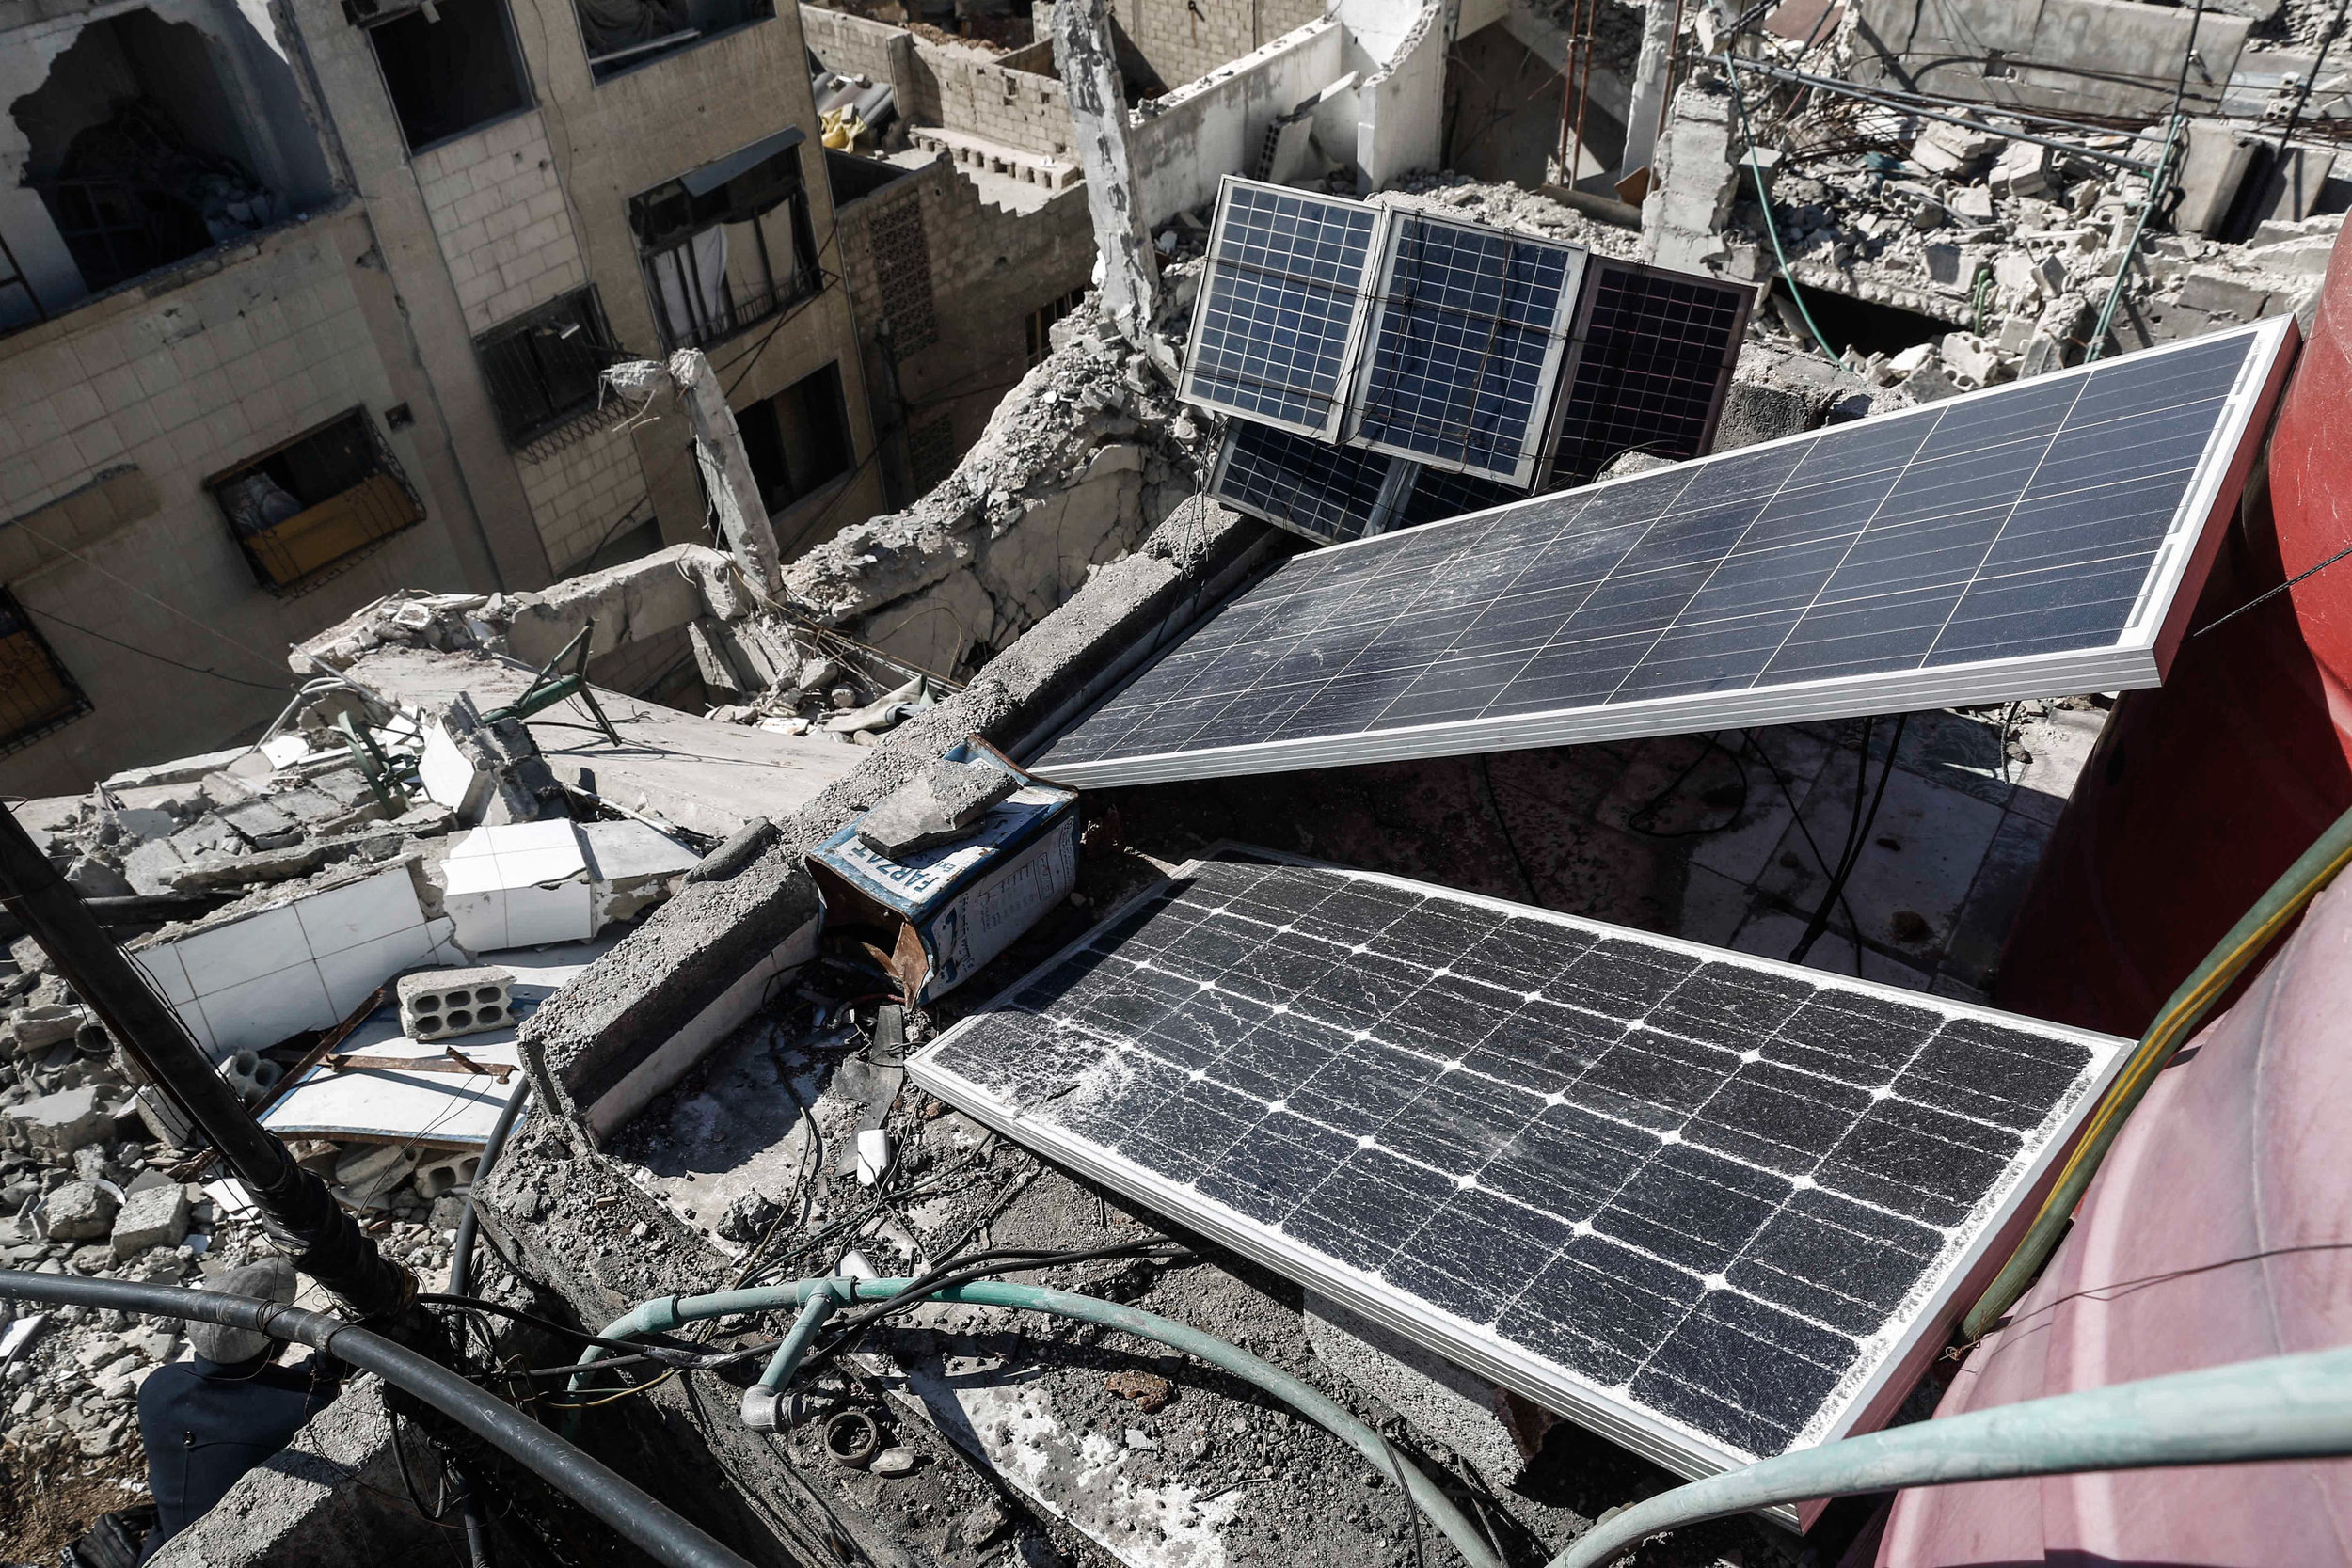 - The solar chargers are seen on the top of a destroyed building in the city of Douma.